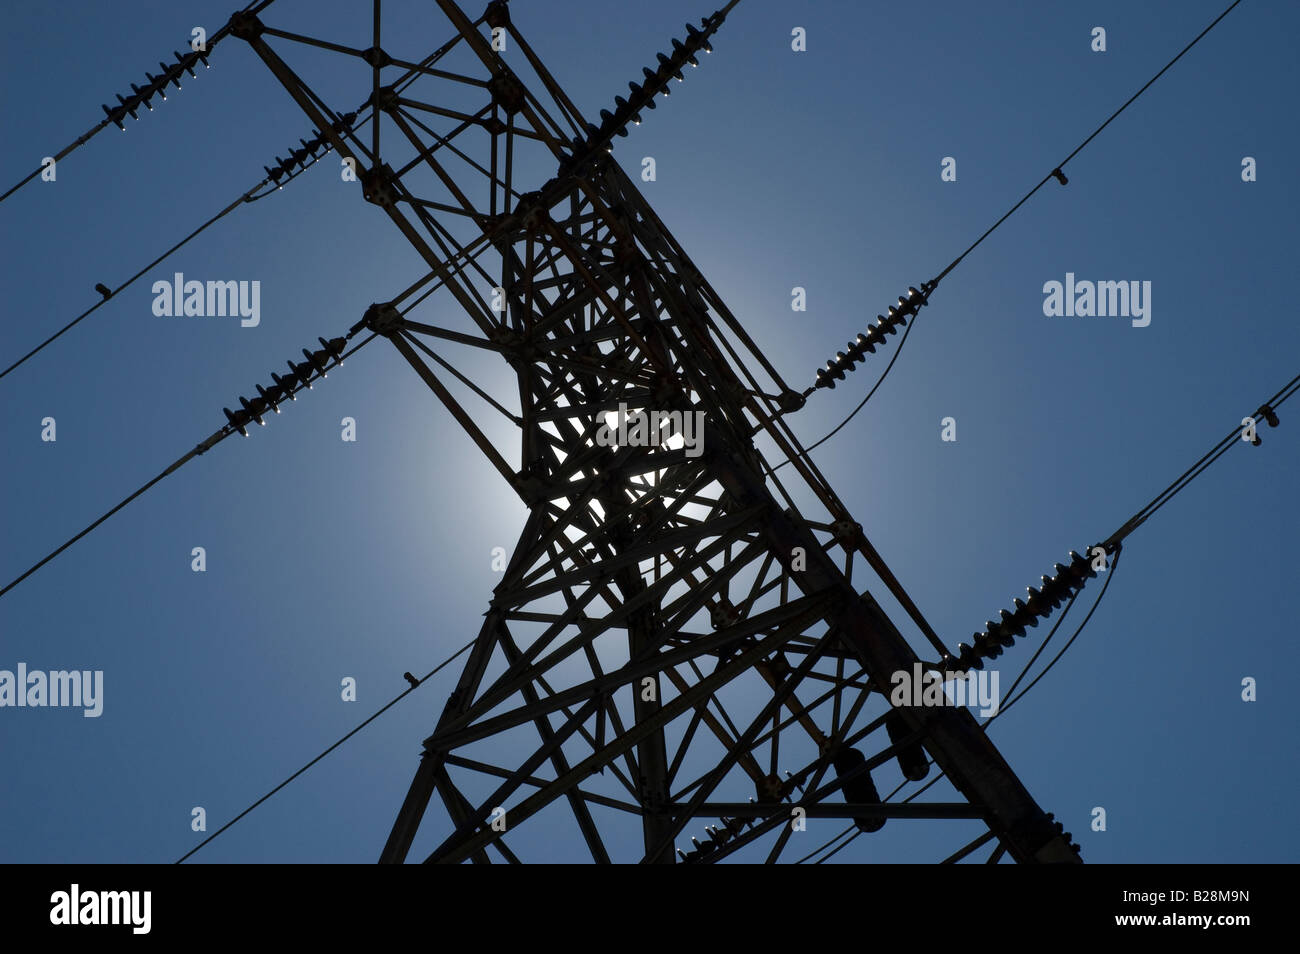 Electricity pylon (or tower) is back-lit by the sun over a blue sky. - Stock Image